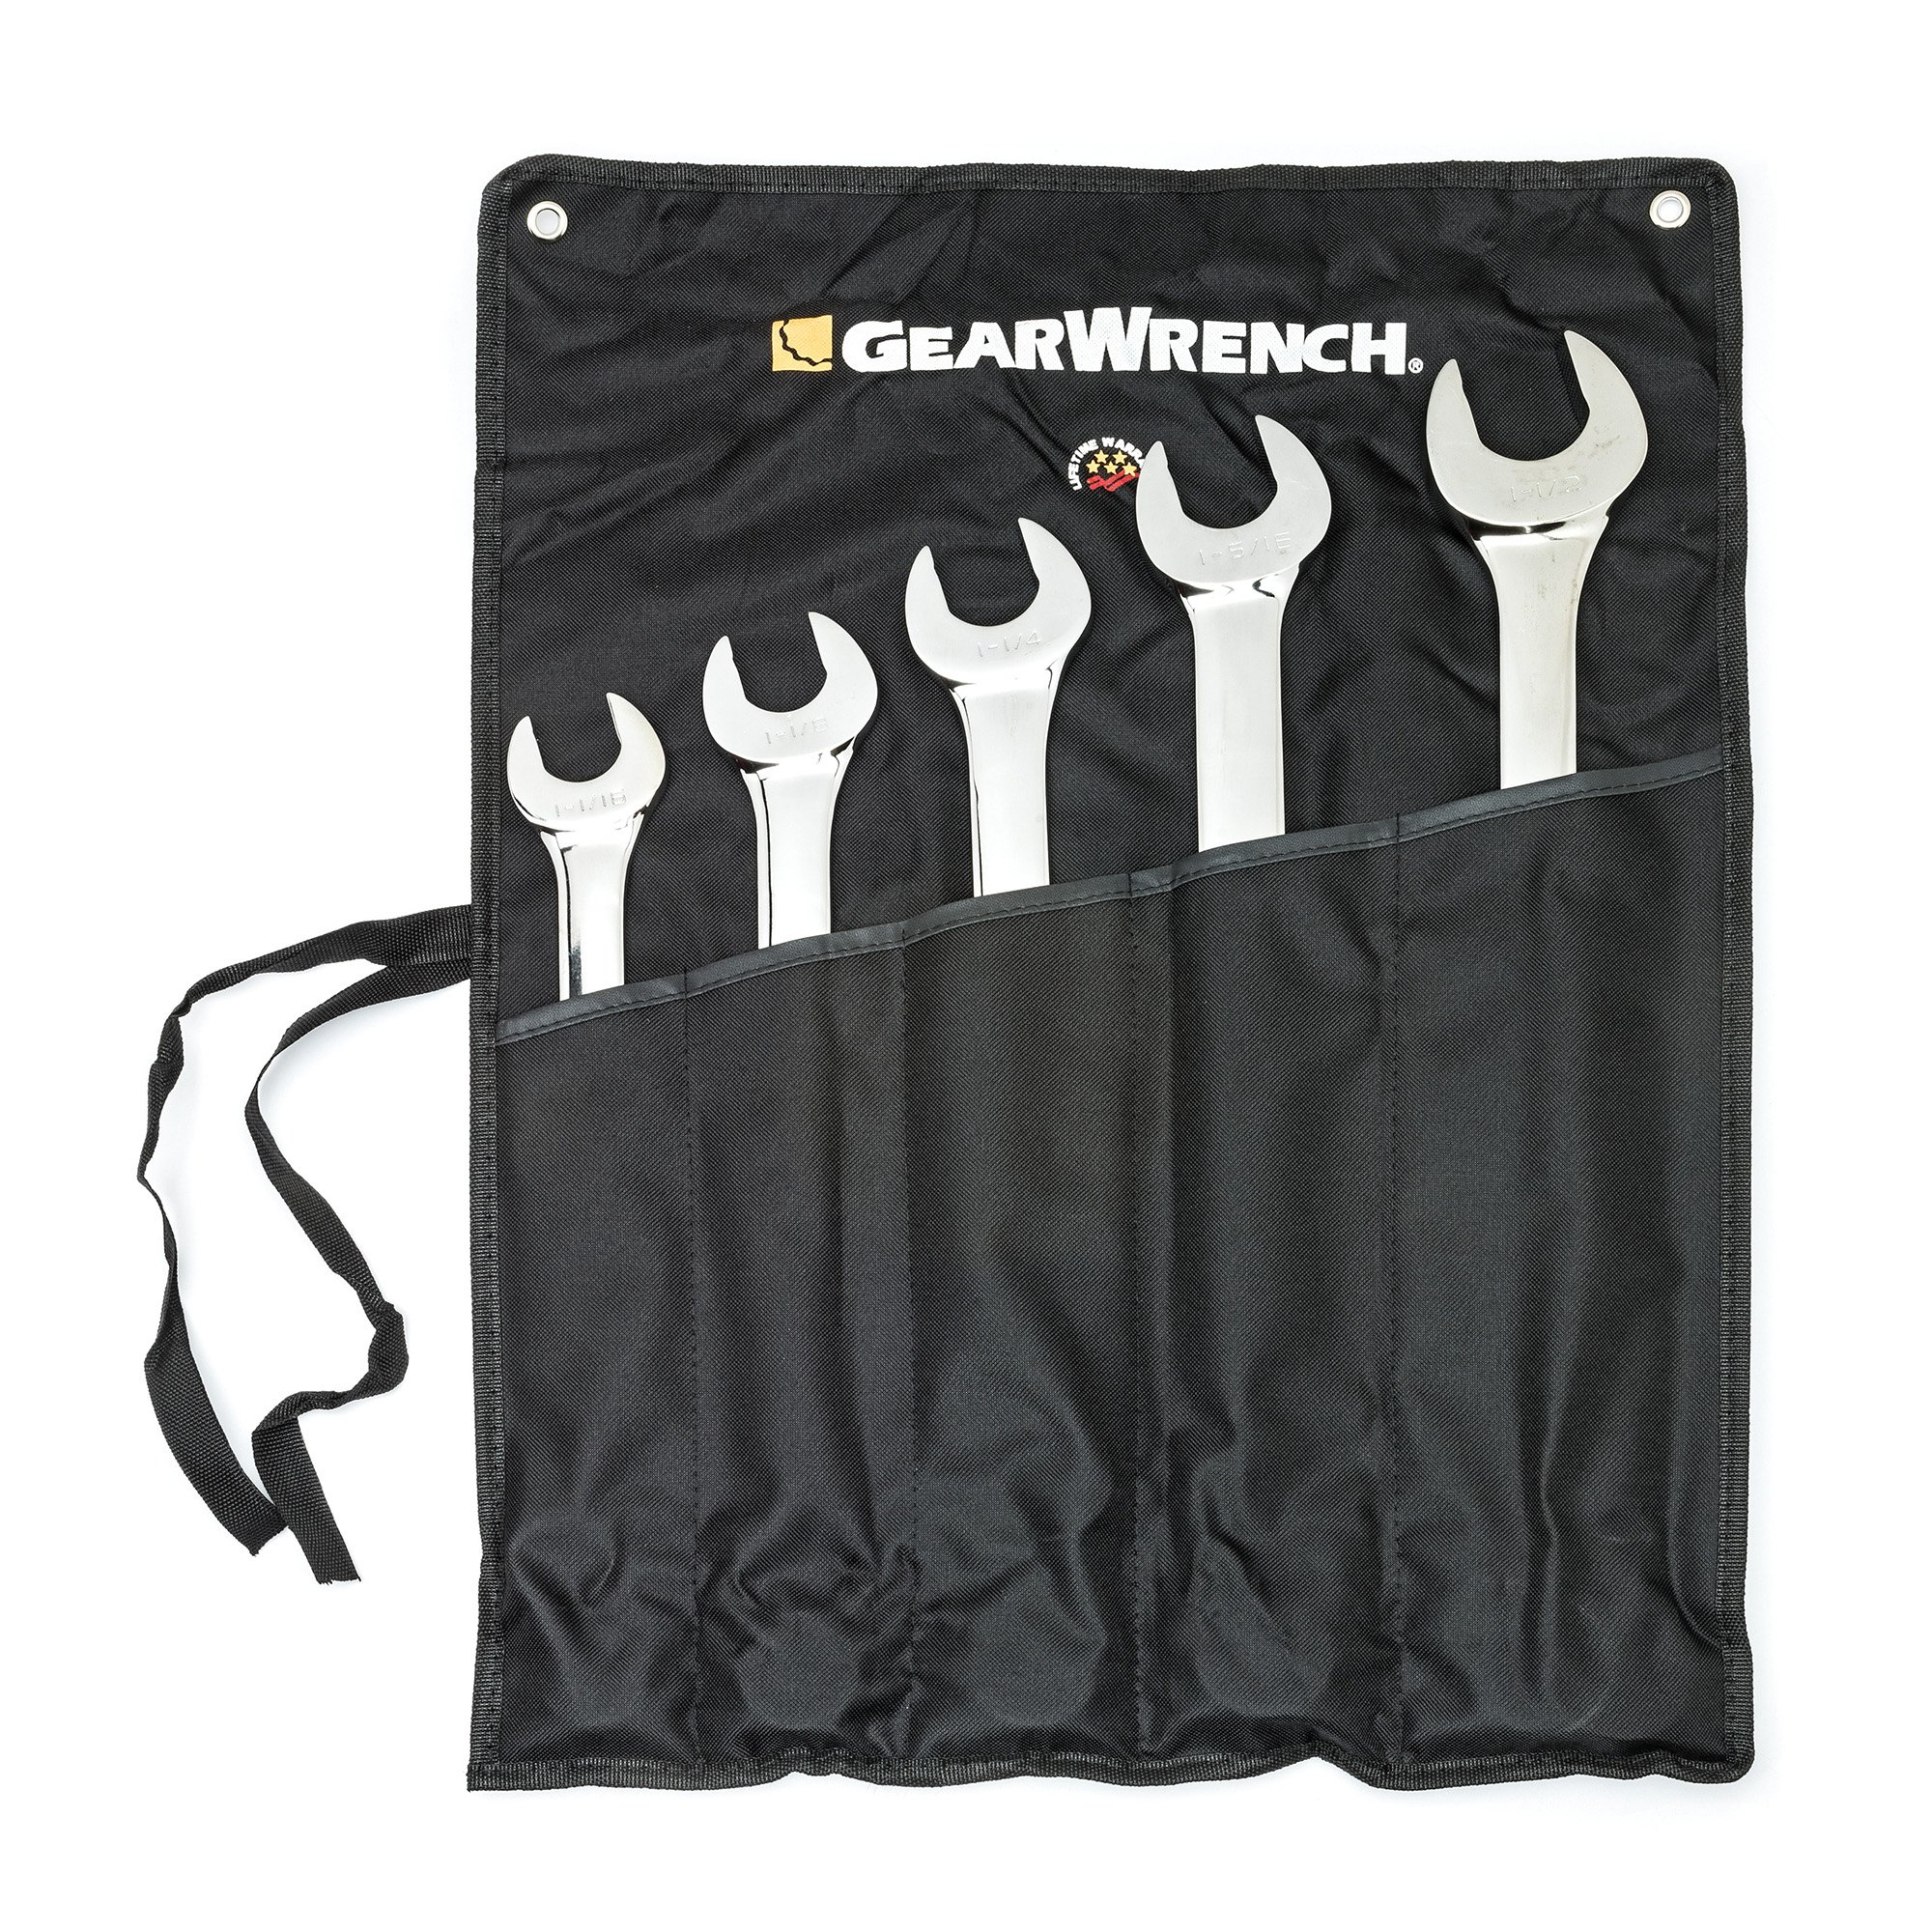 GEARWRENCH 5 Pc. SAE 12 Point Long Pattern Combination Wrench Set - 81921 by GearWrench